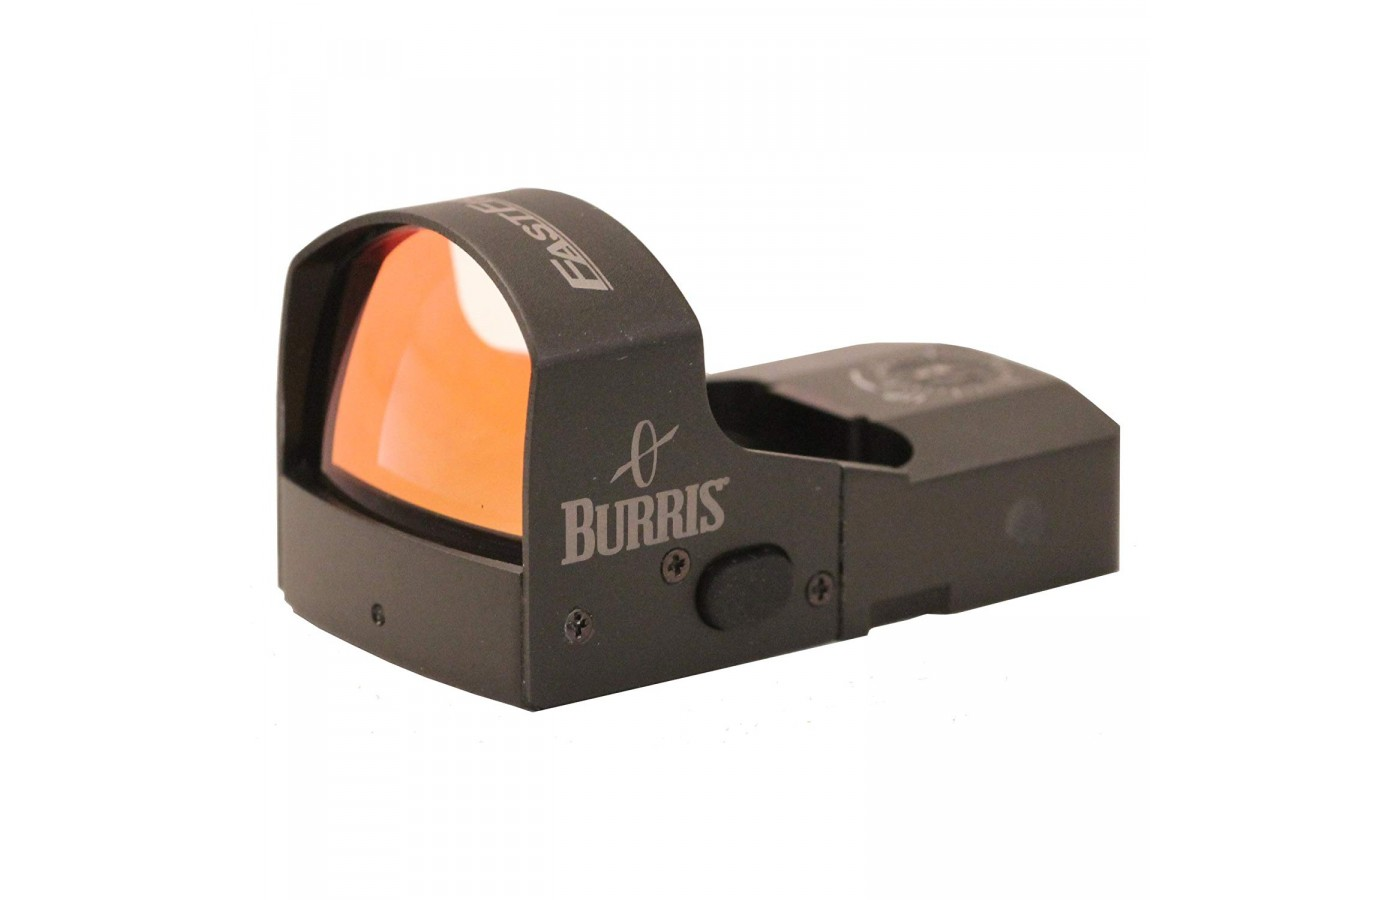 Burris FastFire iii has a 3 MOA or 8 MOA available